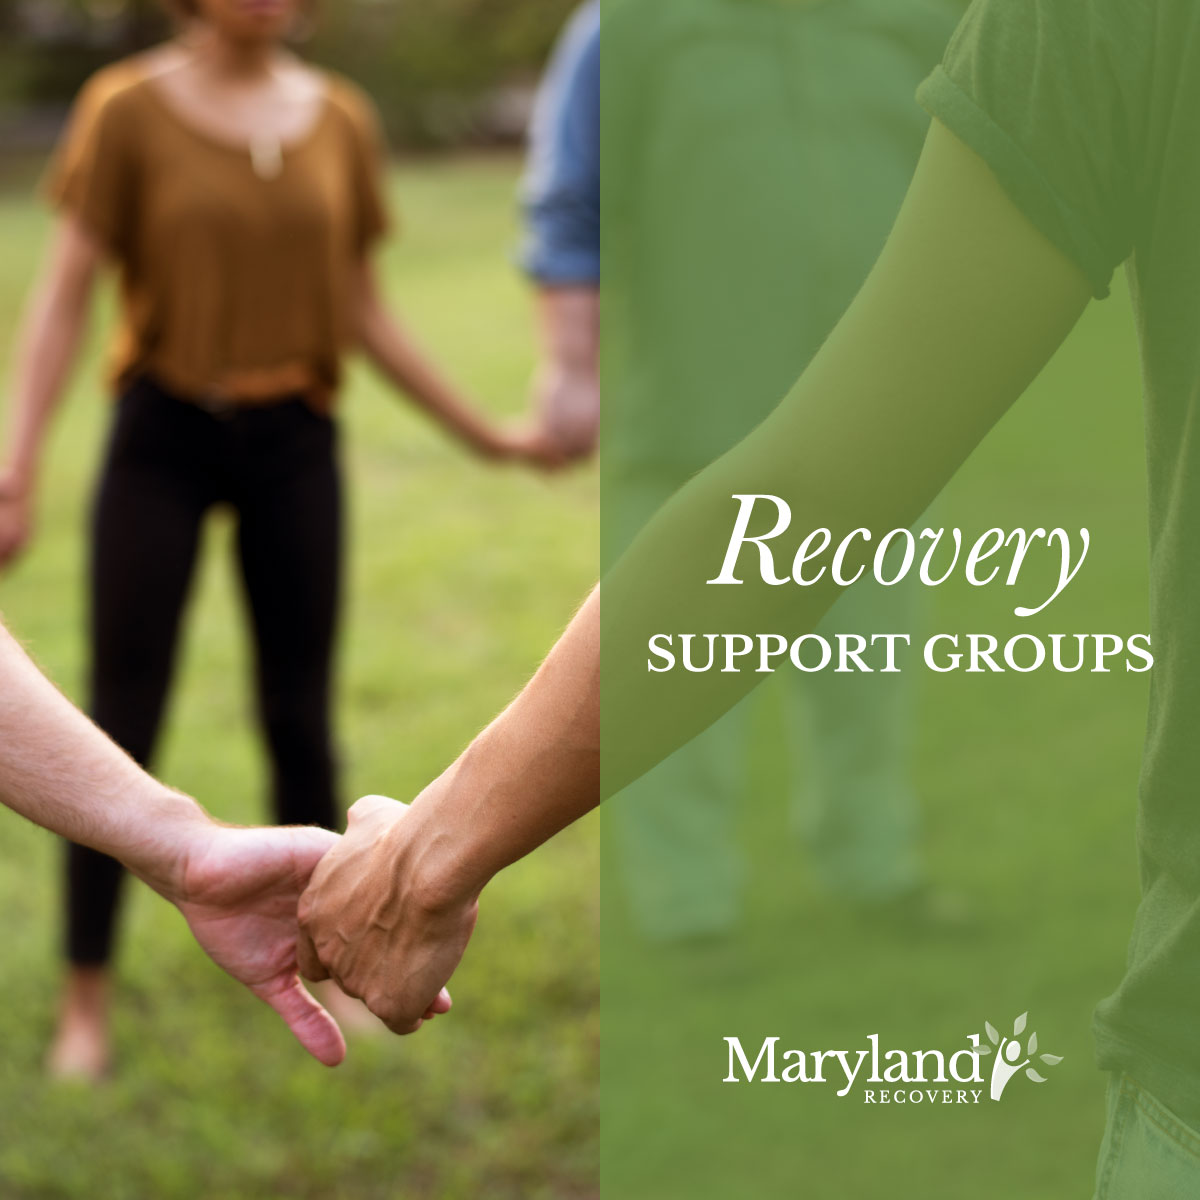 Recovery Support Groups Alternatives To Aa Meetings And